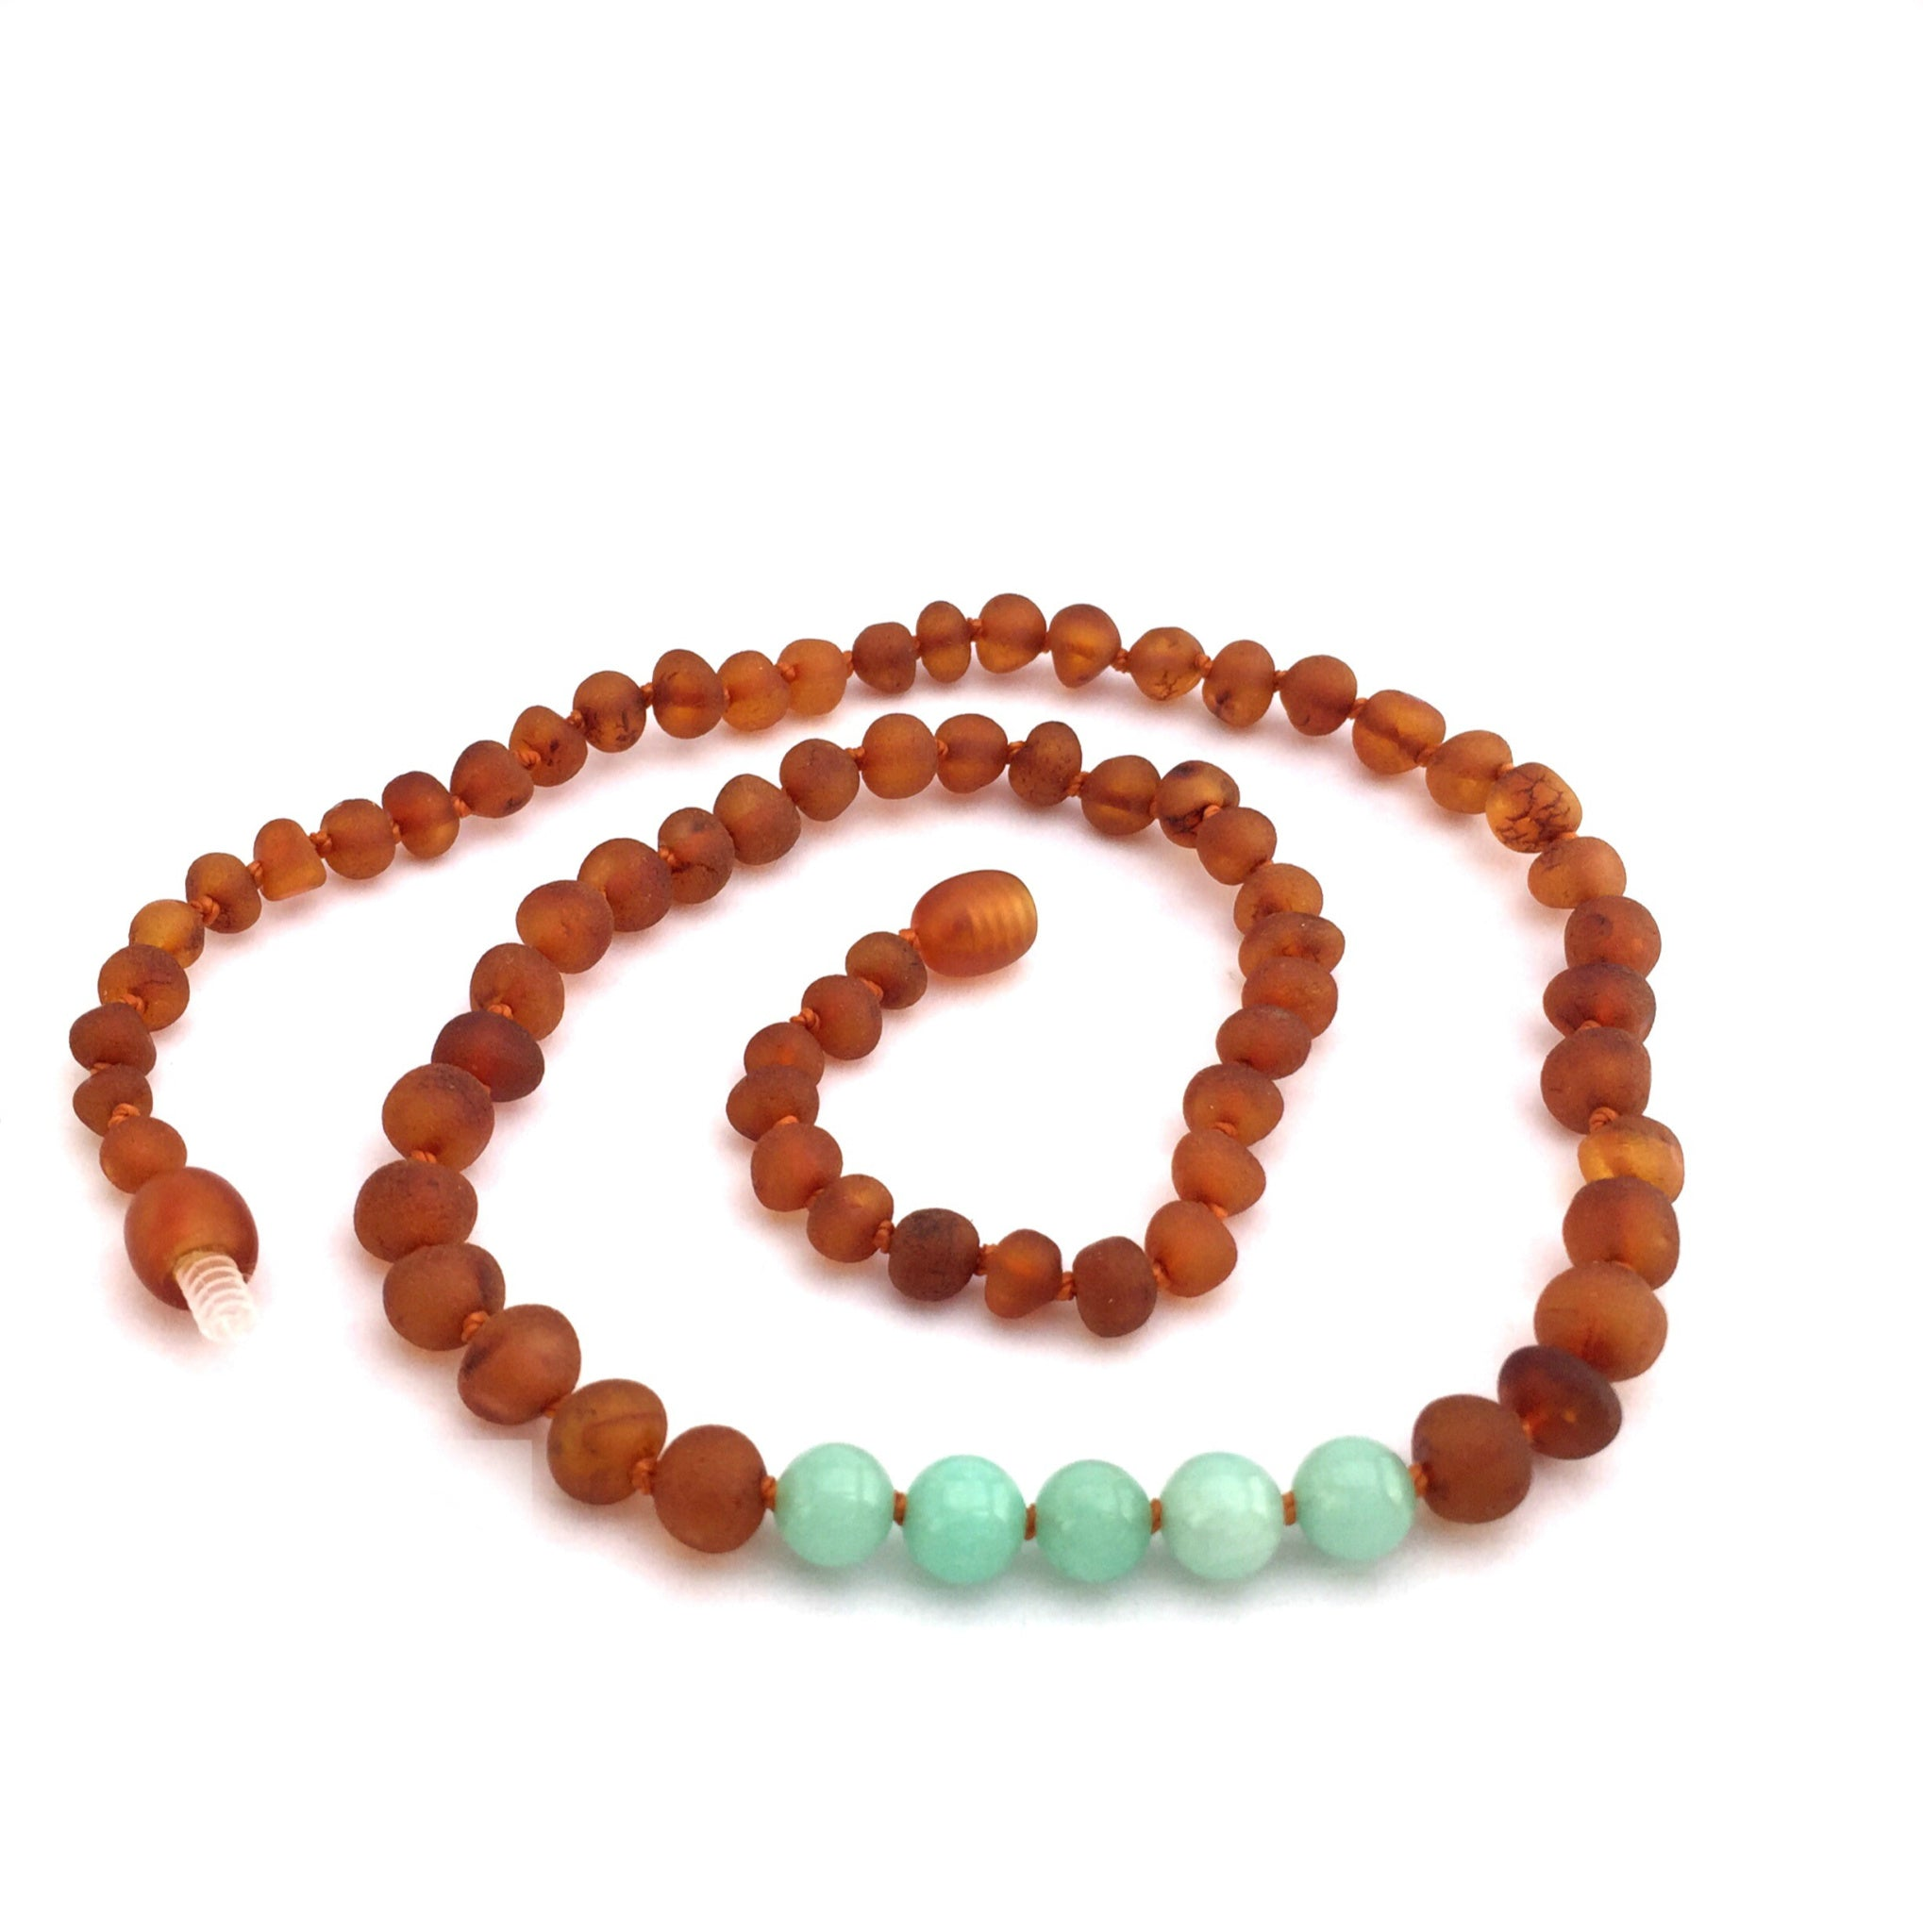 Amber and Amazonite Necklace - Crunch Natural Parenting is where to buy